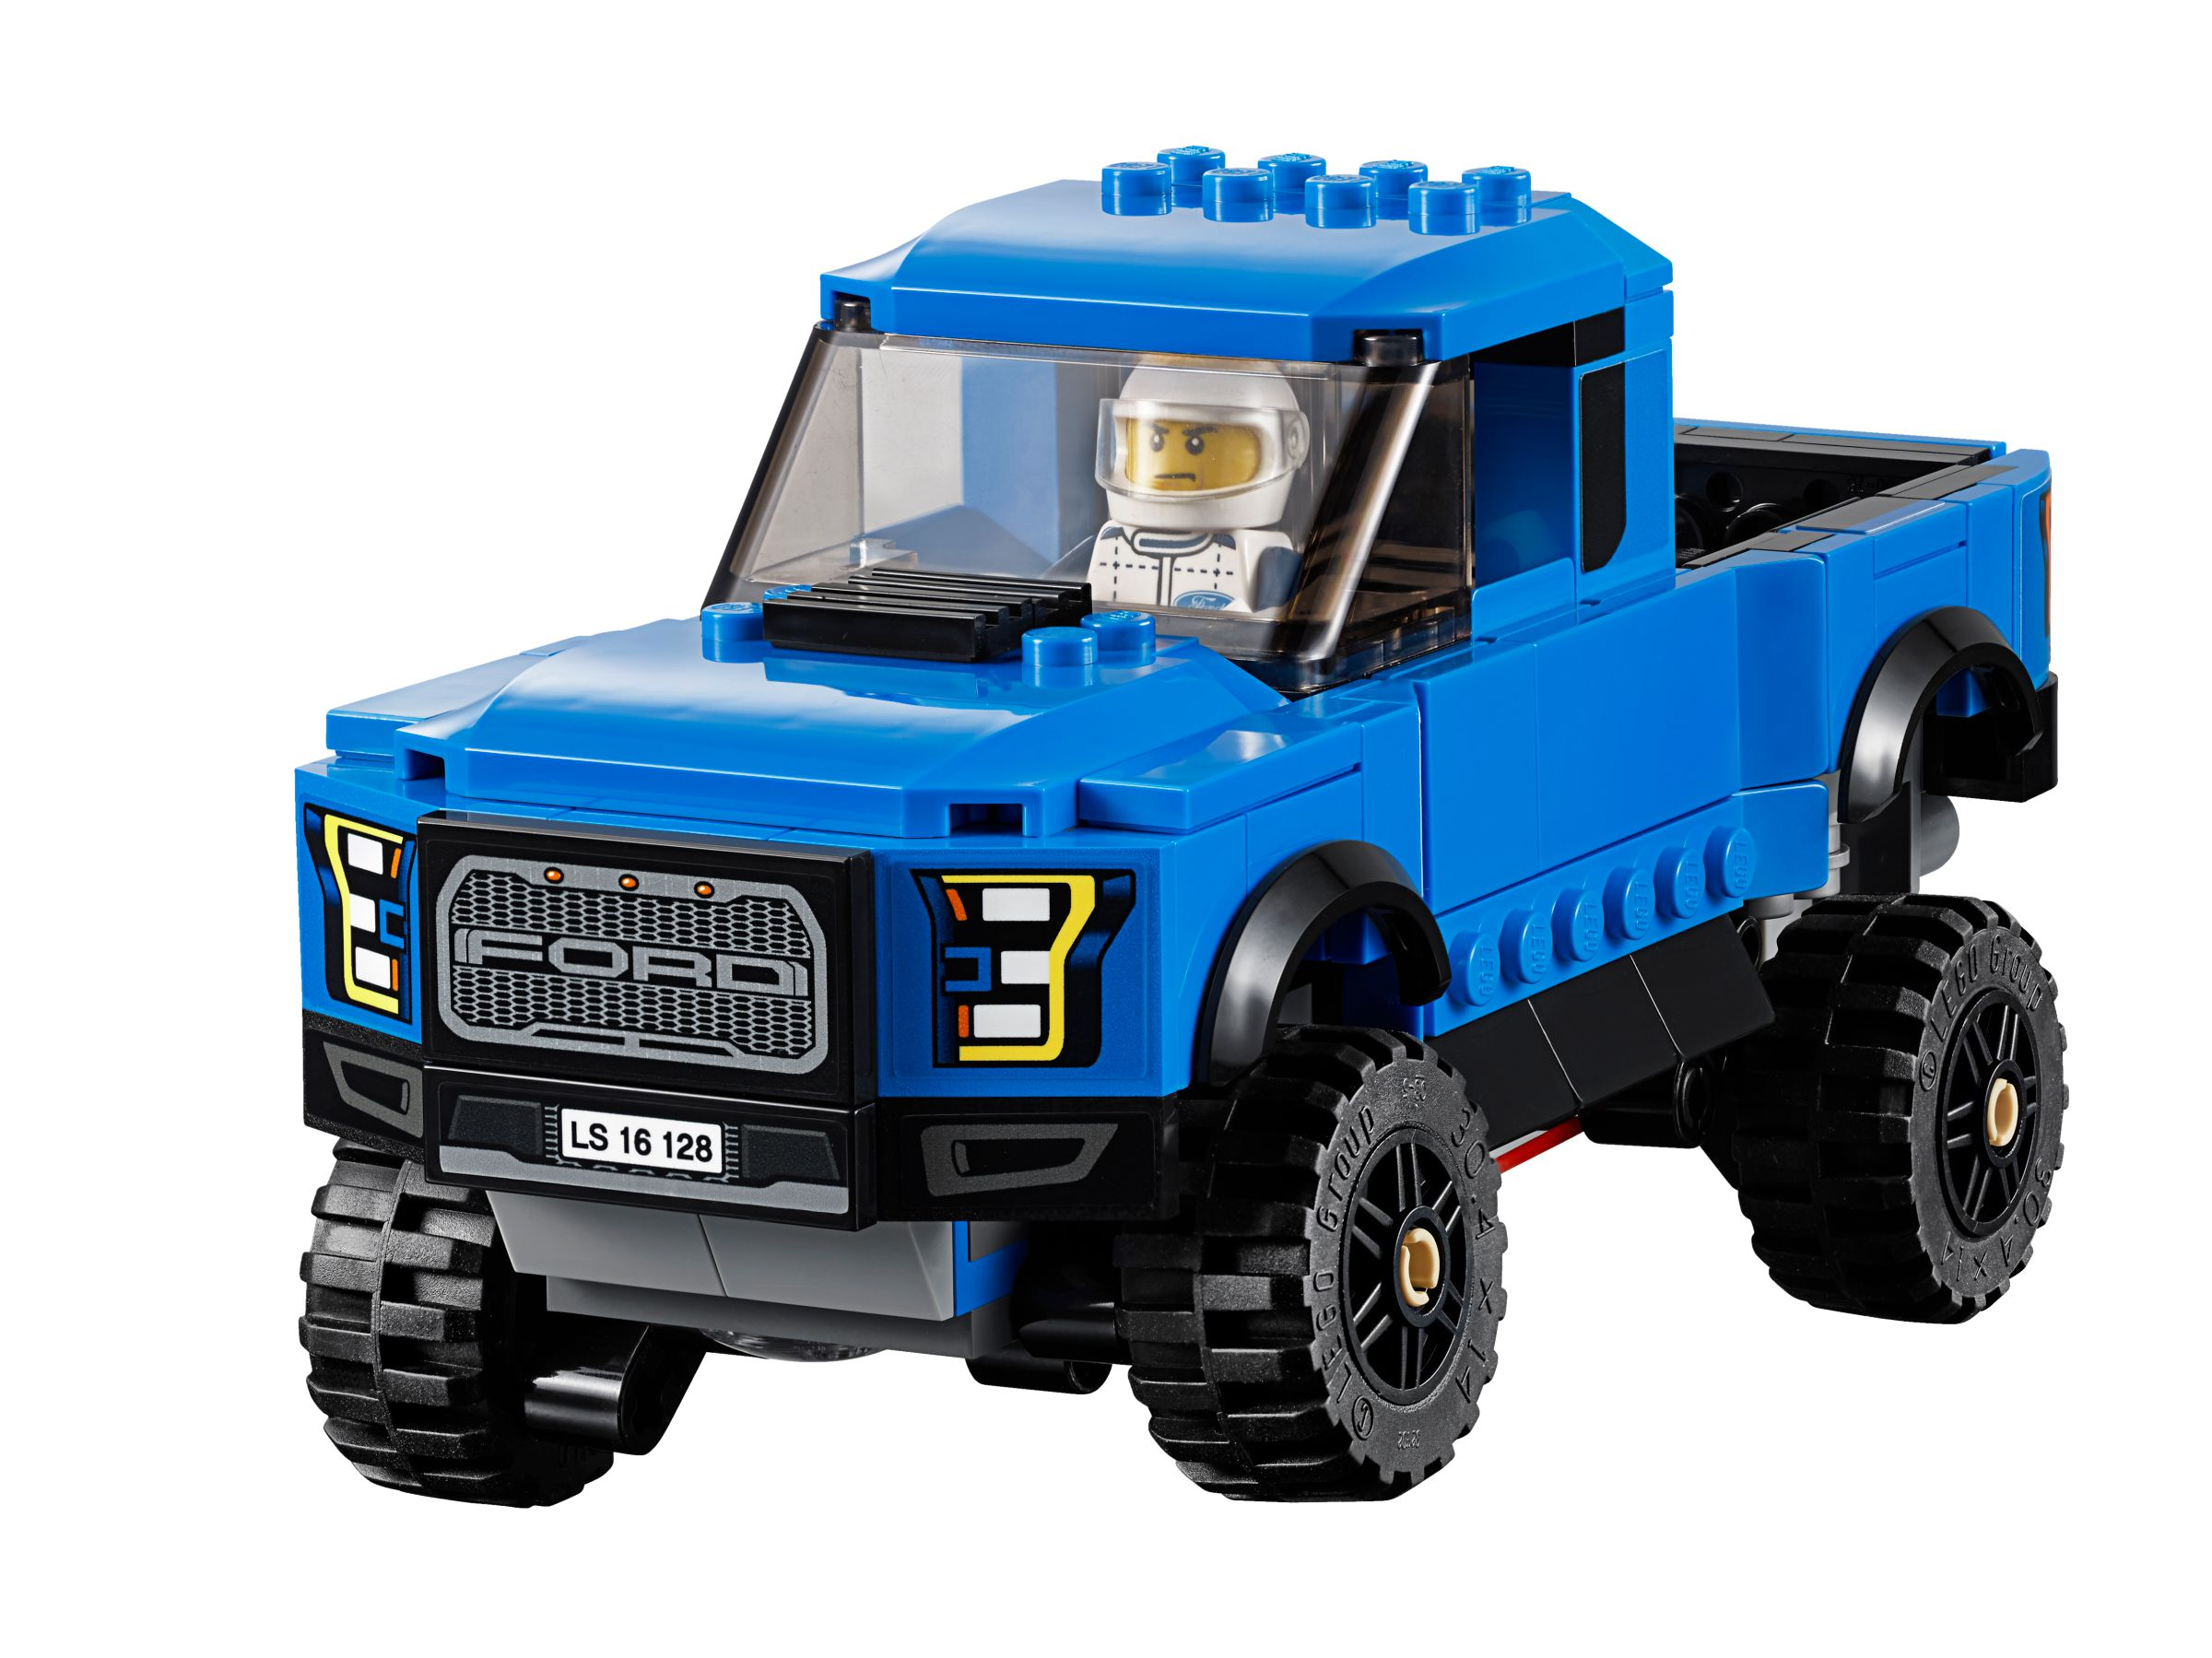 LEGO Speed Champions 75875 Ford F-150 Raptor & Ford Model A Hot Rod LEGO_75875_alt3.jpg